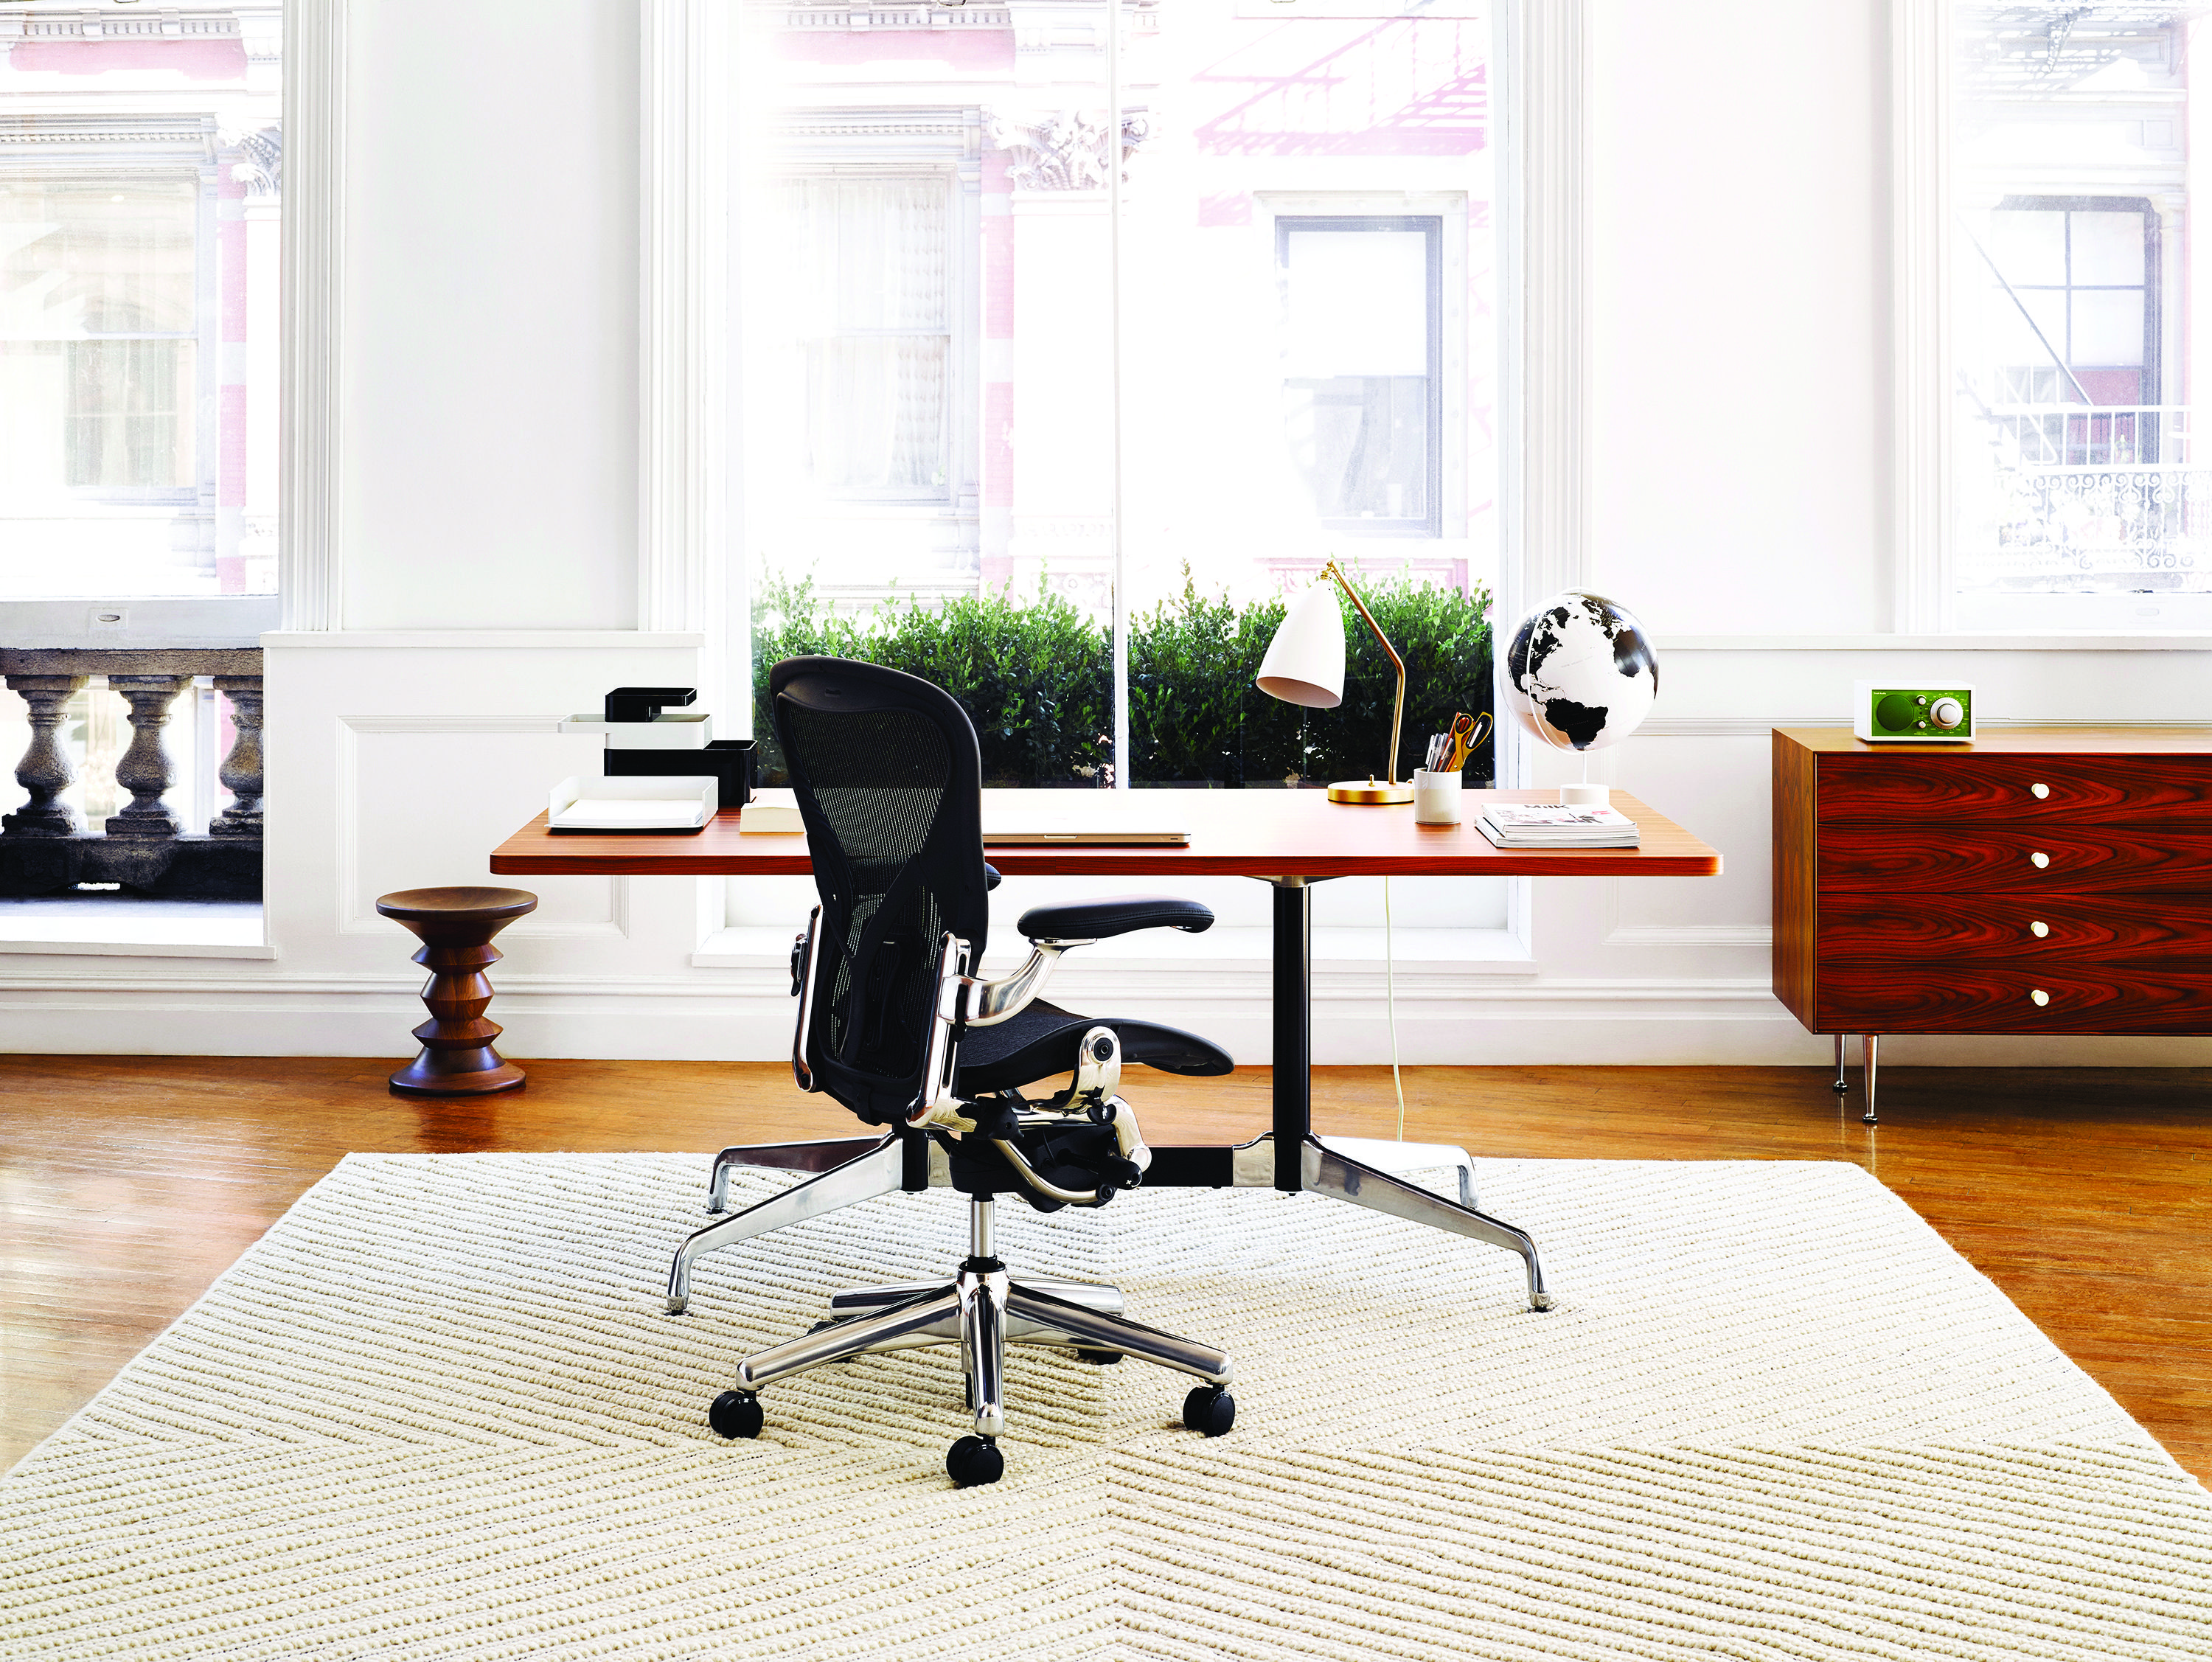 A simple bright modern office space Mid century office meets